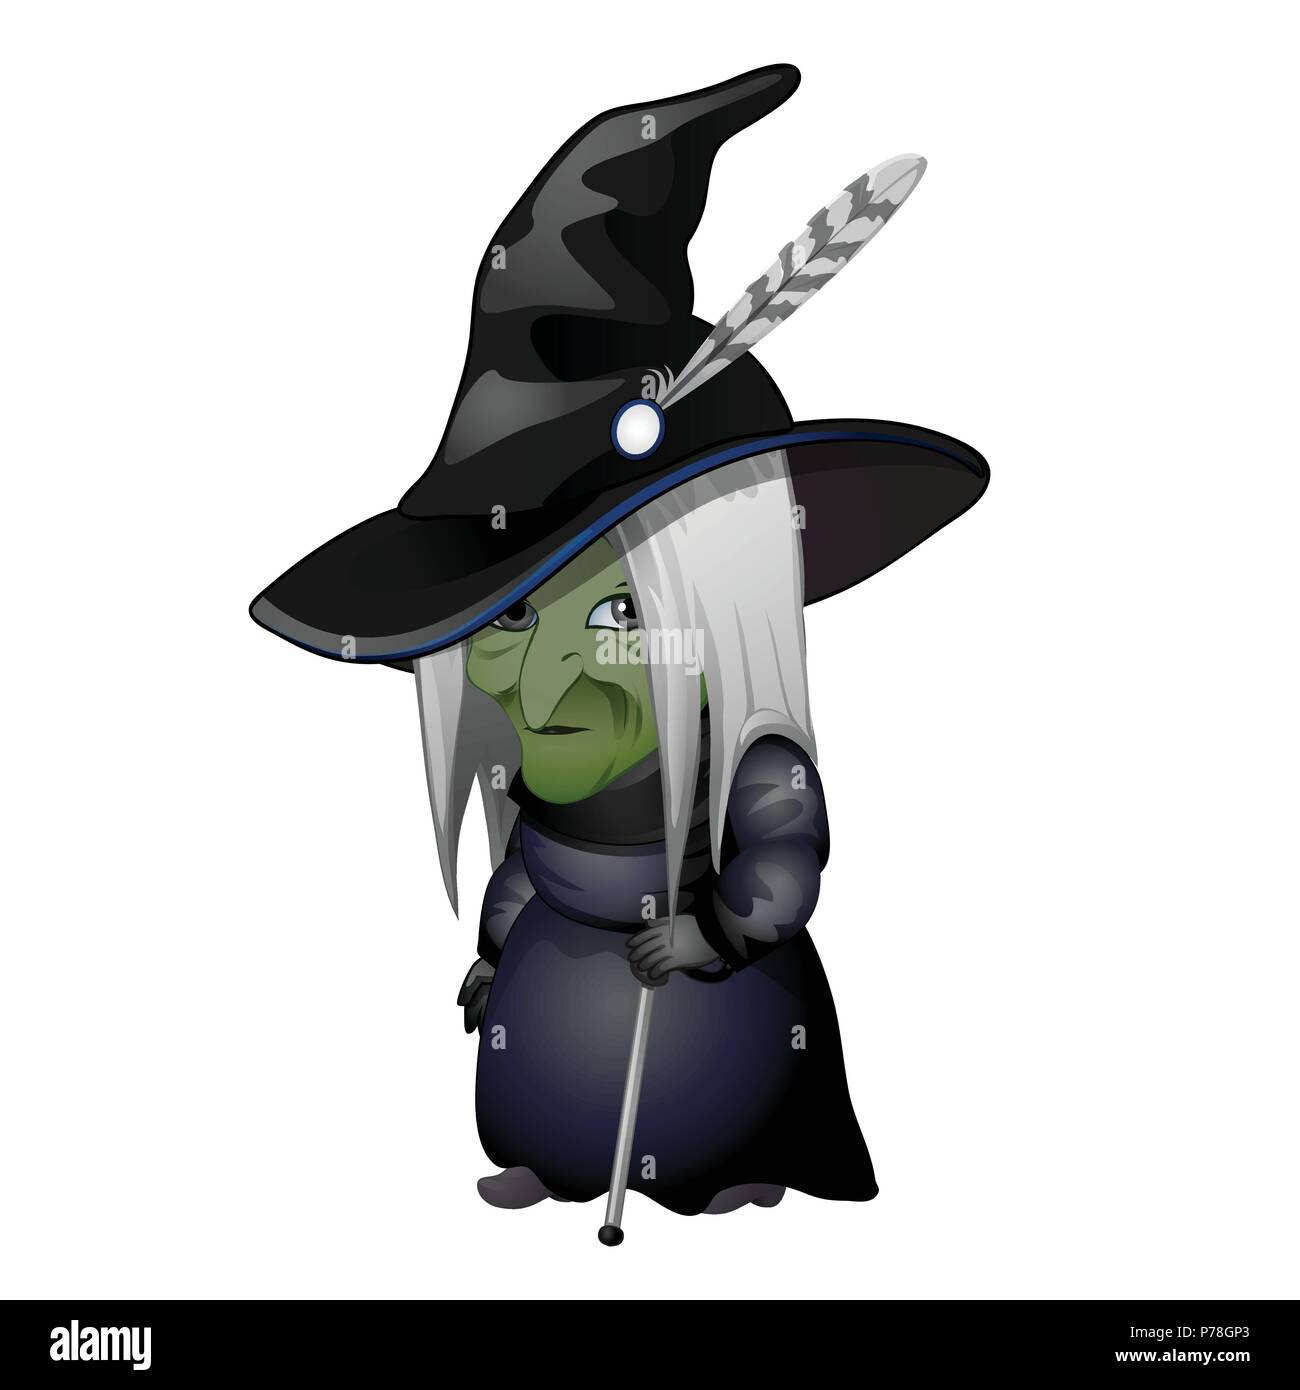 Halloween Cartoon Witch Face.Old Witch With Green Face And Walking Stick Isolated On White